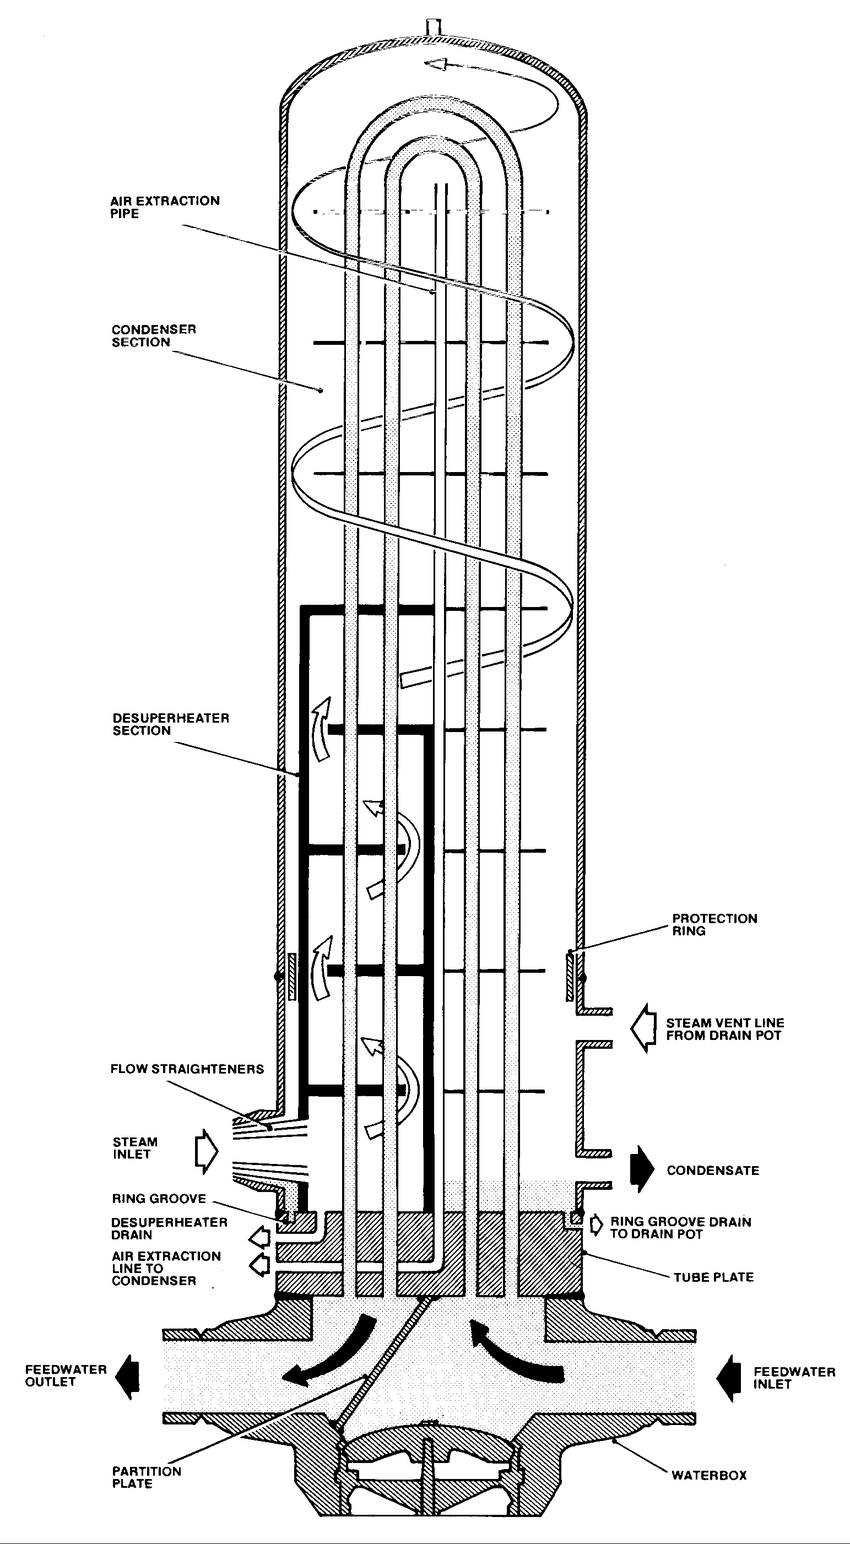 Schematic drawing of HP Heater at a power station selected